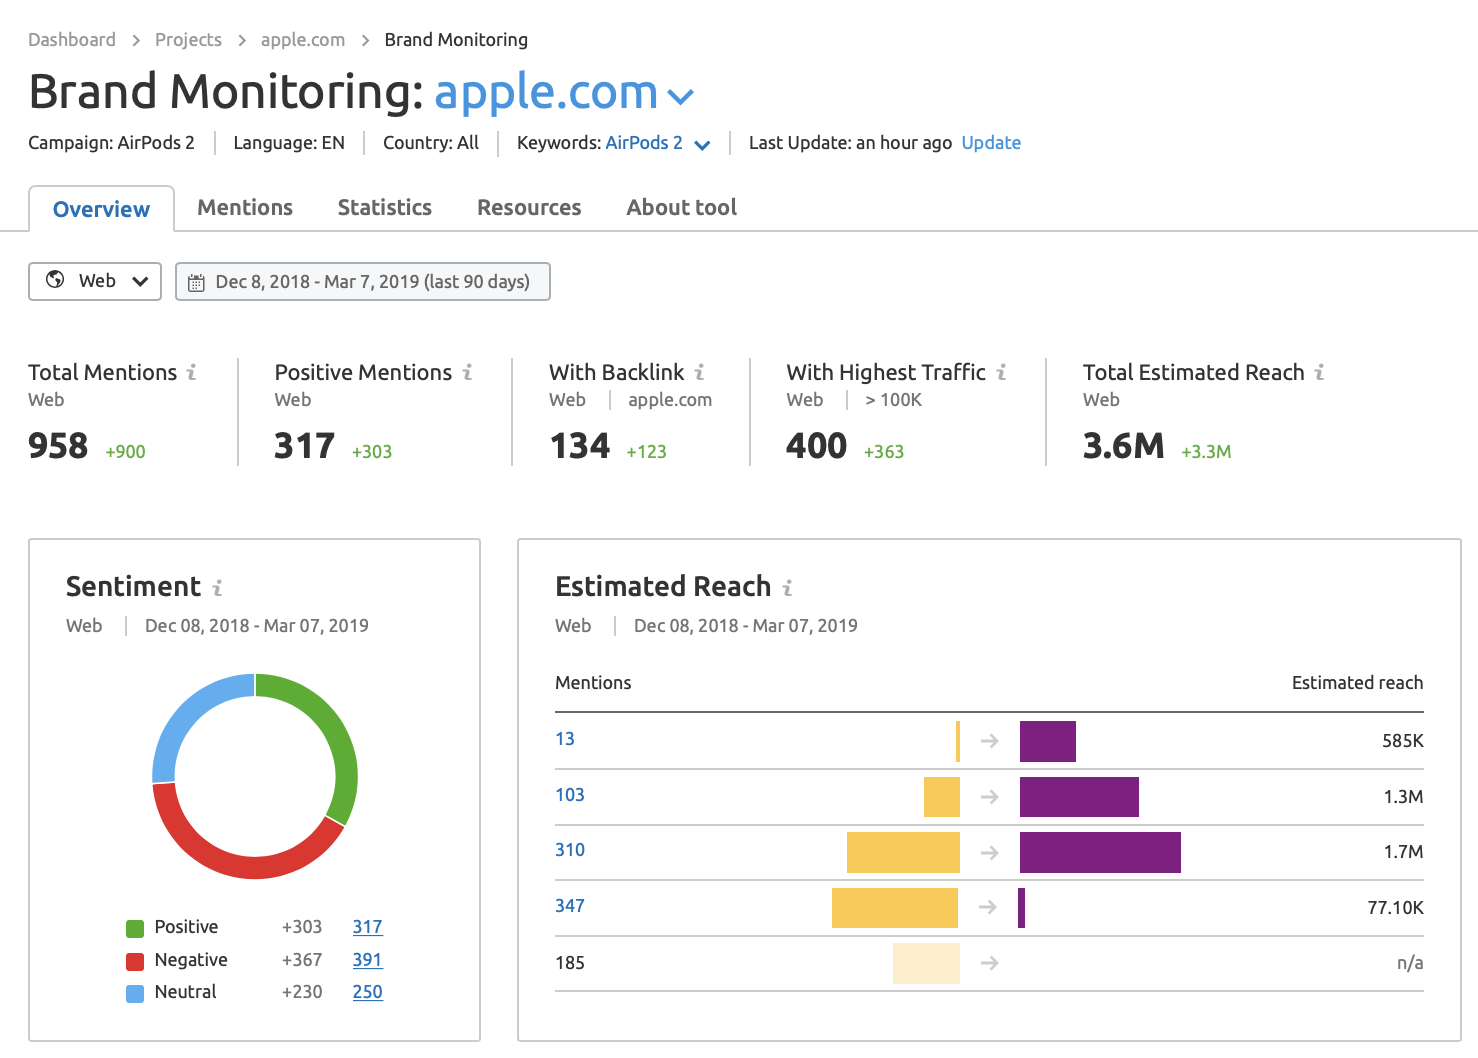 Overview in Brand Monitoring